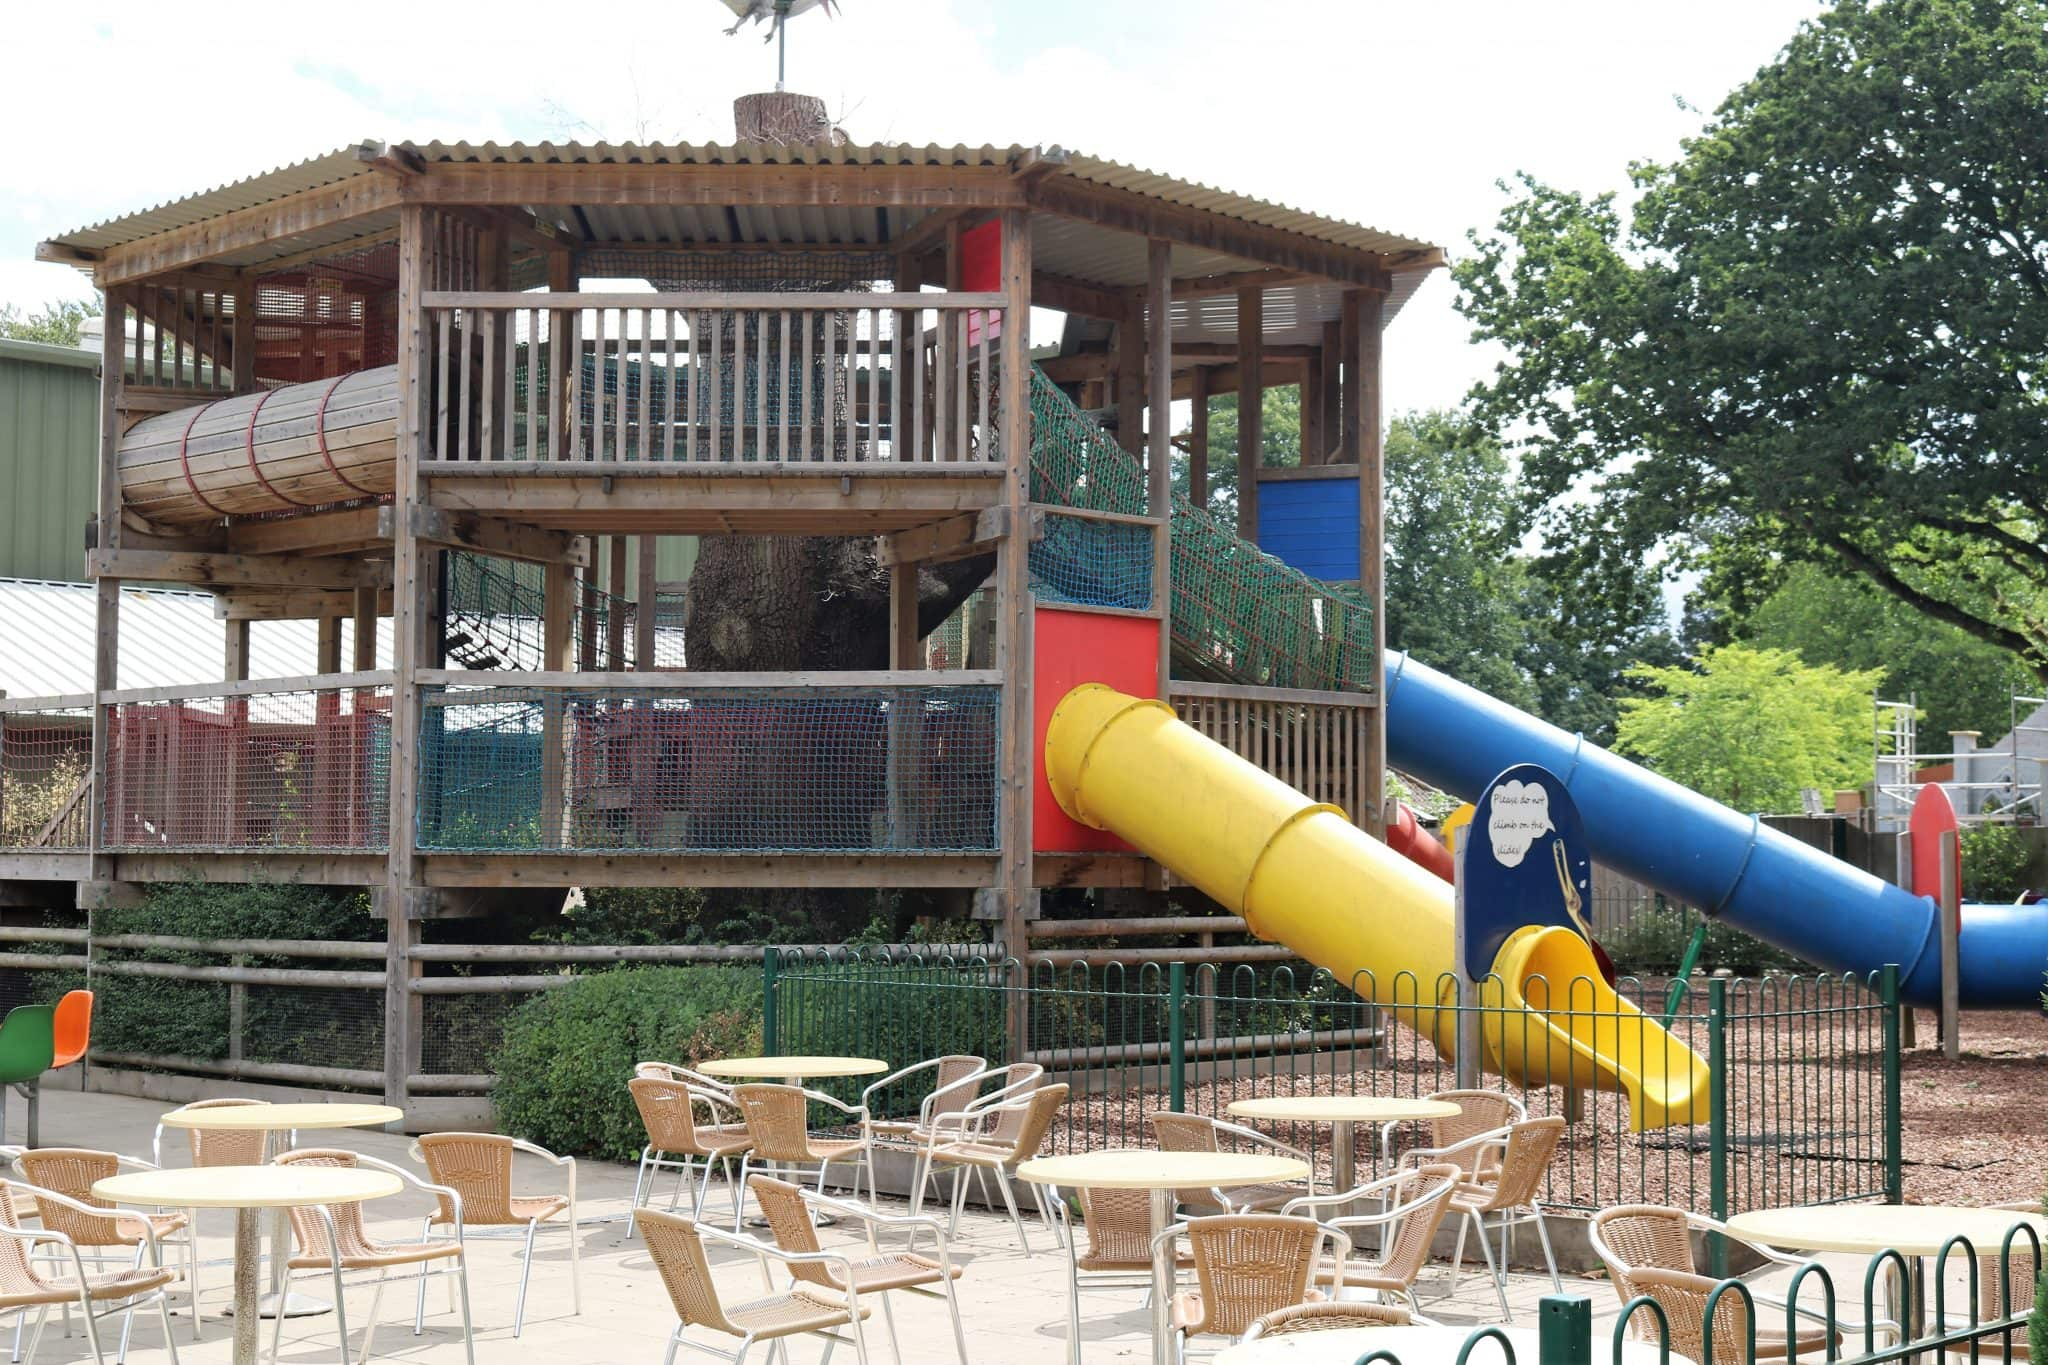 The large outdoor play area at Dinomite